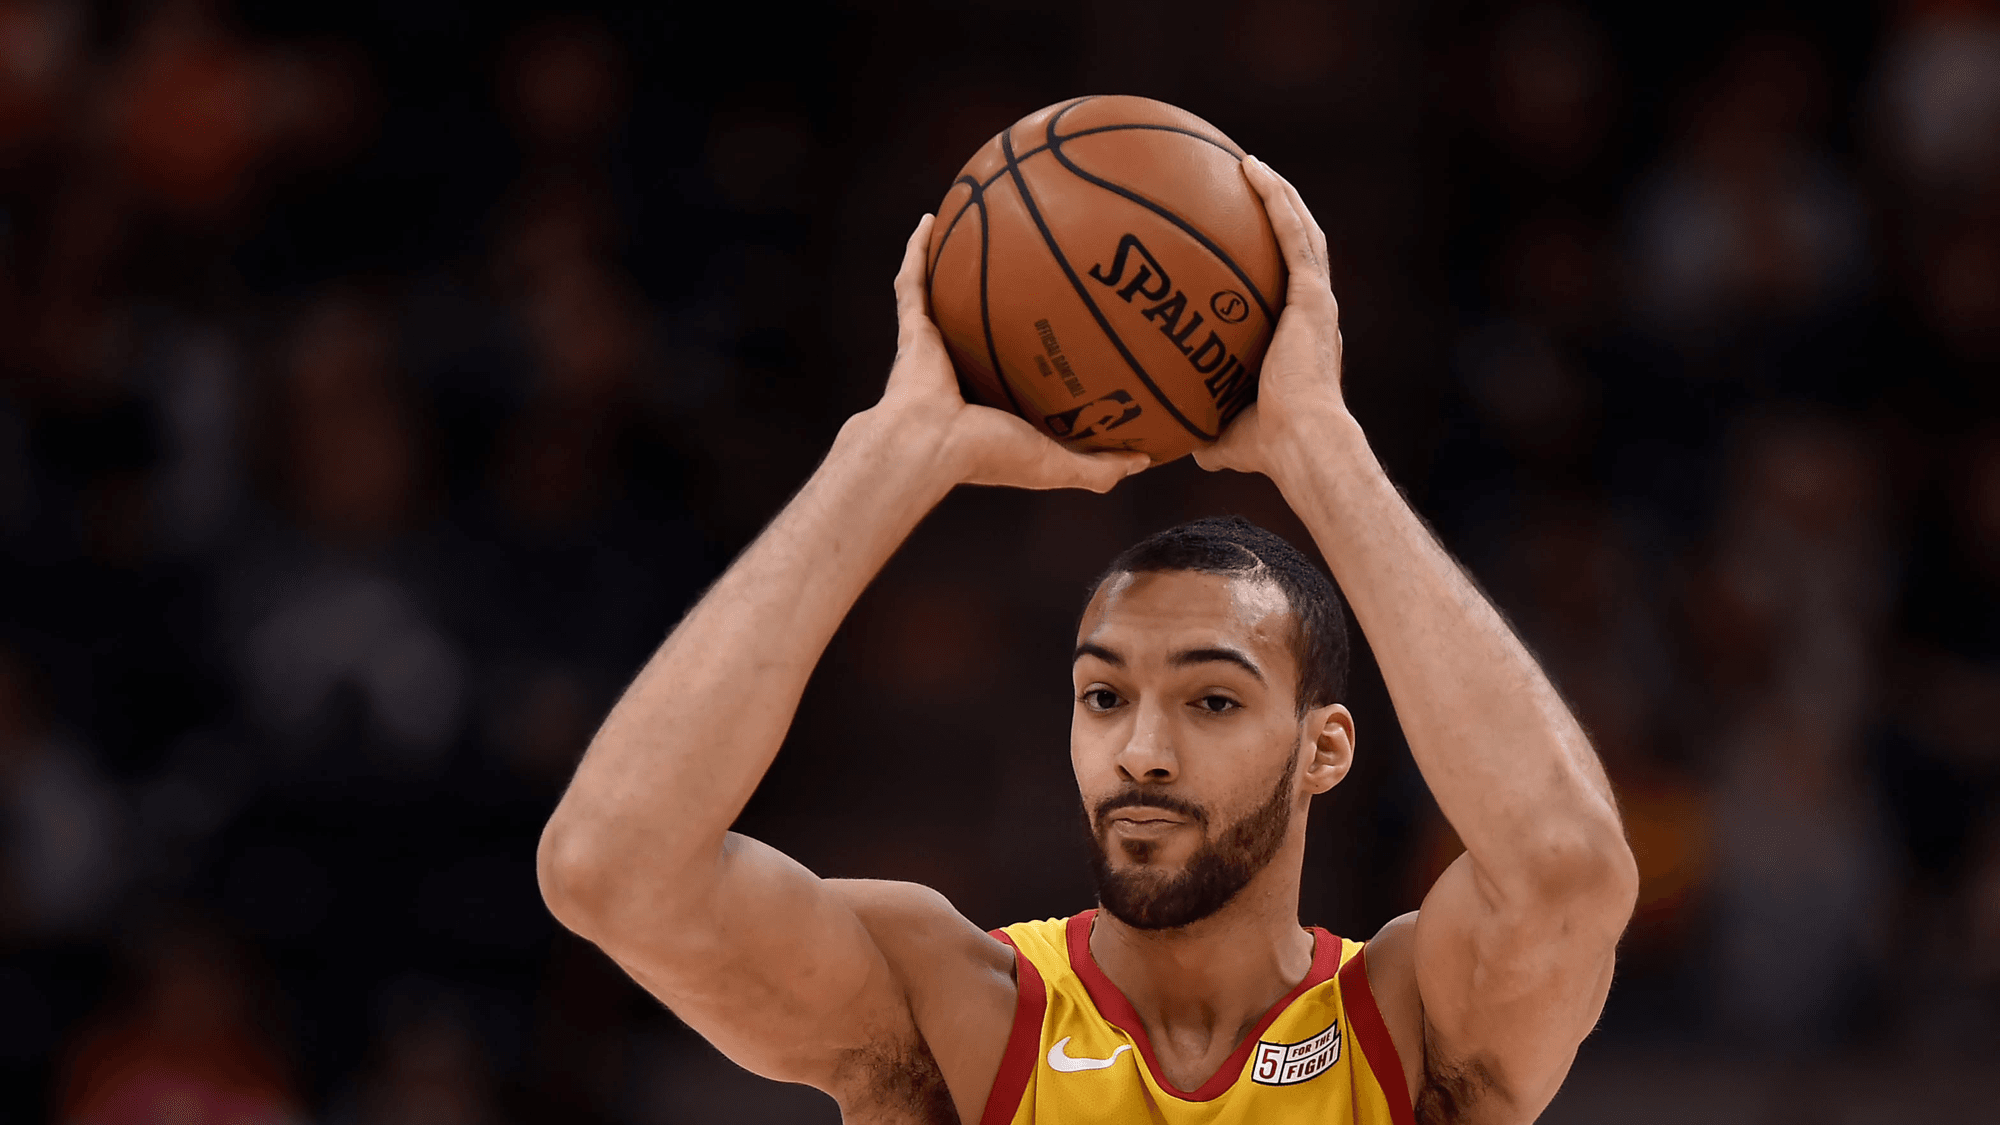 Rudy Gobert Favored to Be 2021 NBA Defensive Player of the Year